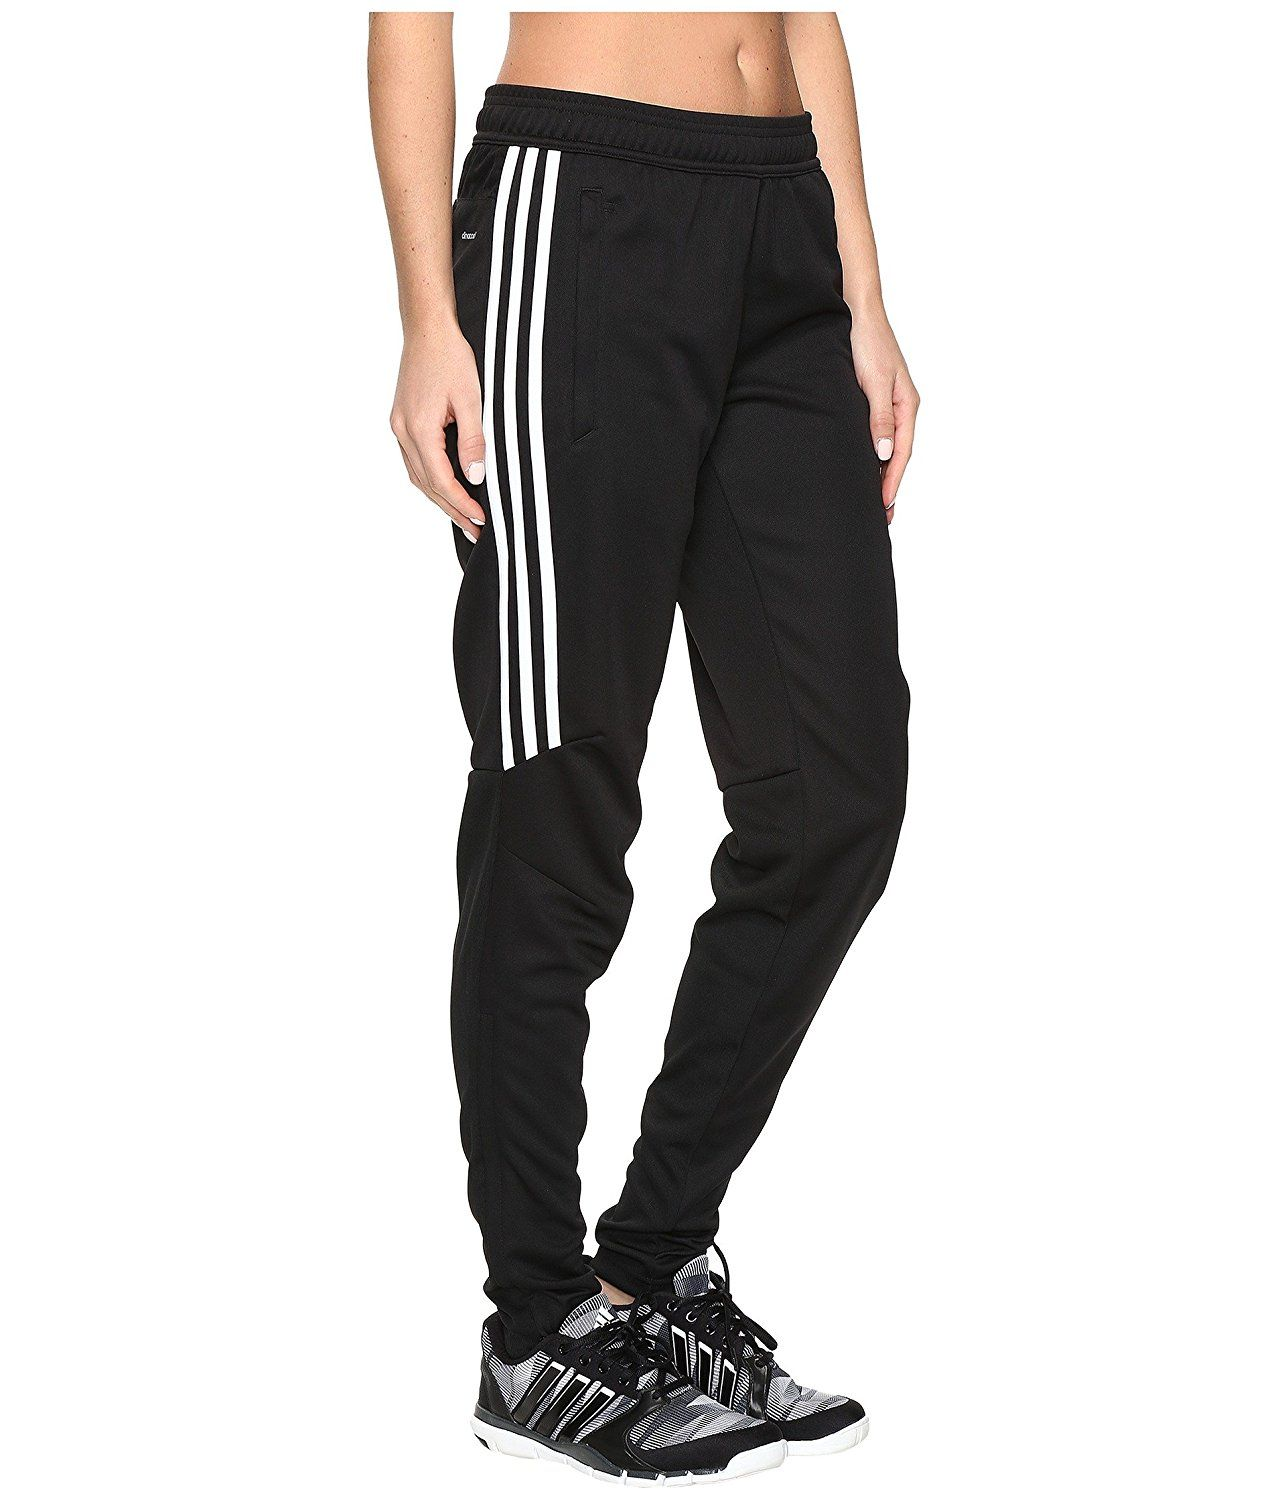 ebe7bd764bd06 Amazon.com: adidas Women's Soccer Tiro 17 Training Pants: Sports ...